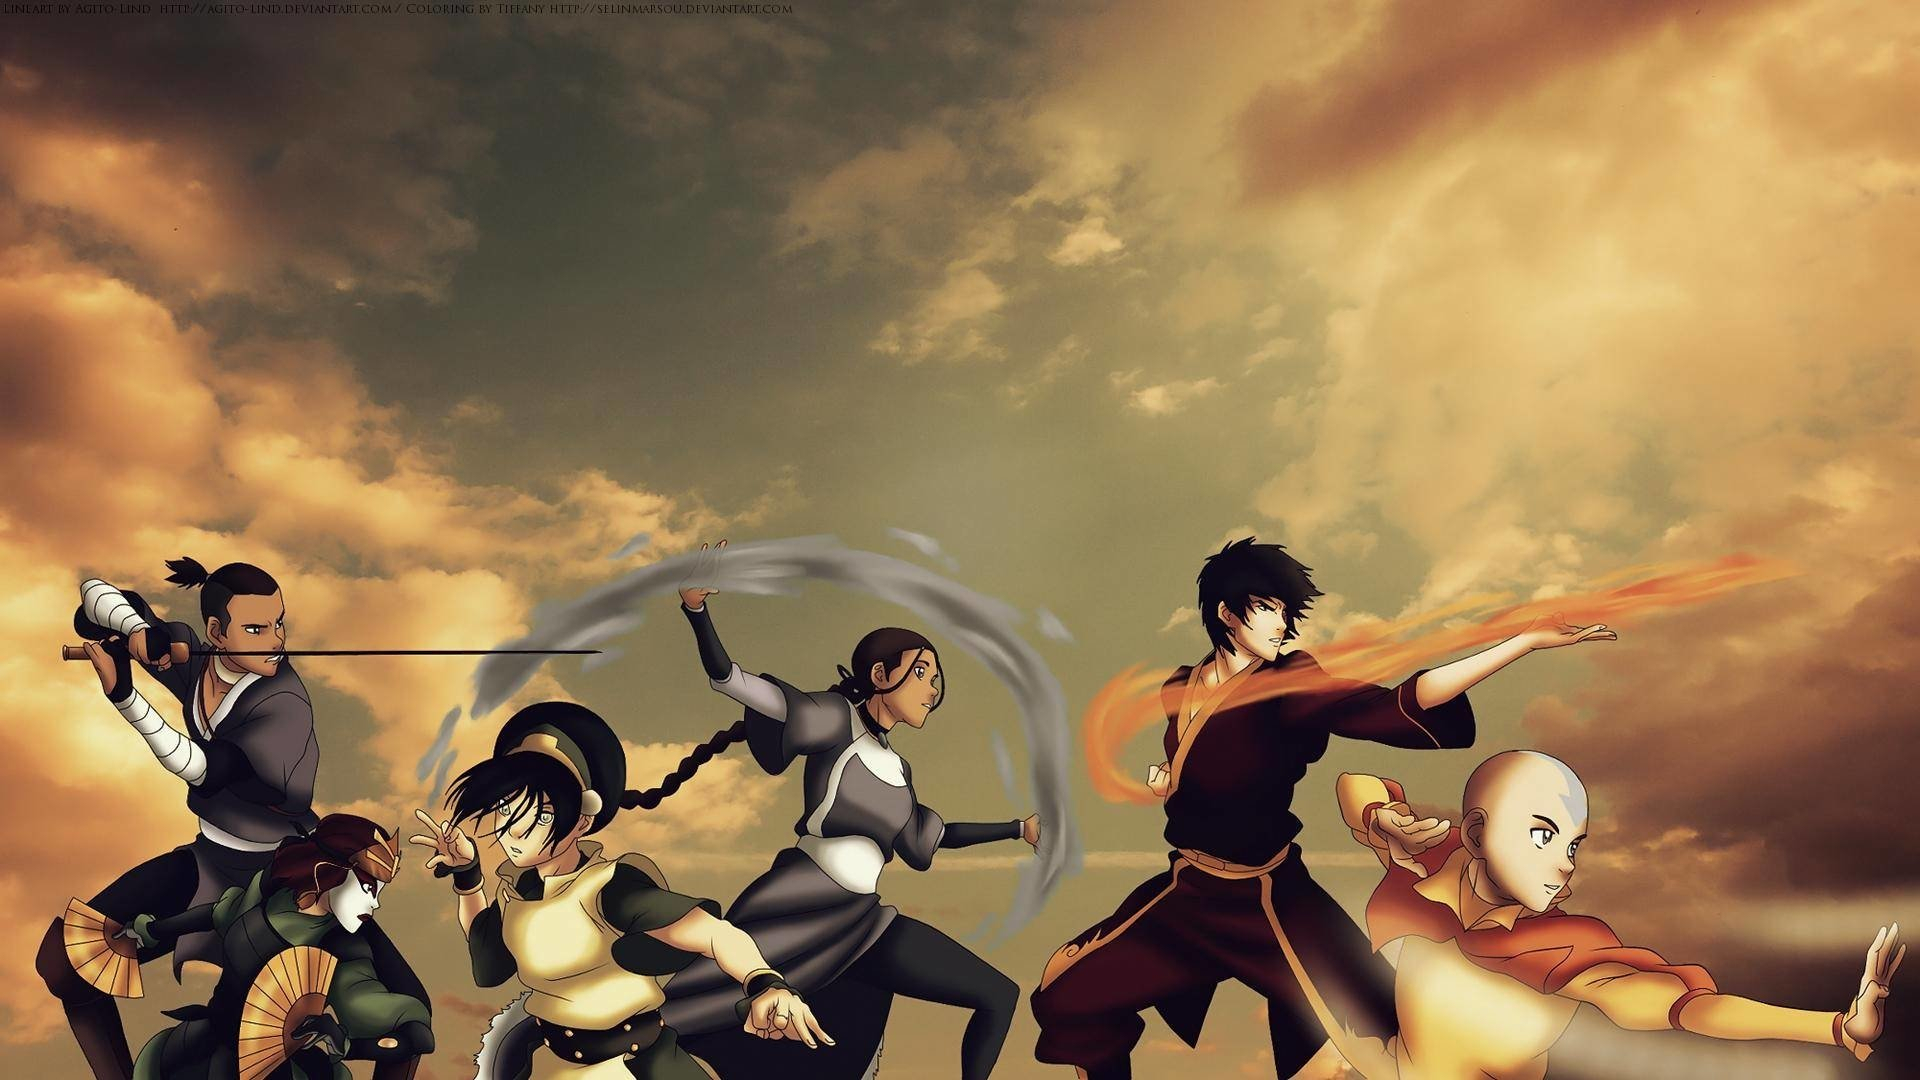 126 avatar: the last airbender hd wallpapers | background images